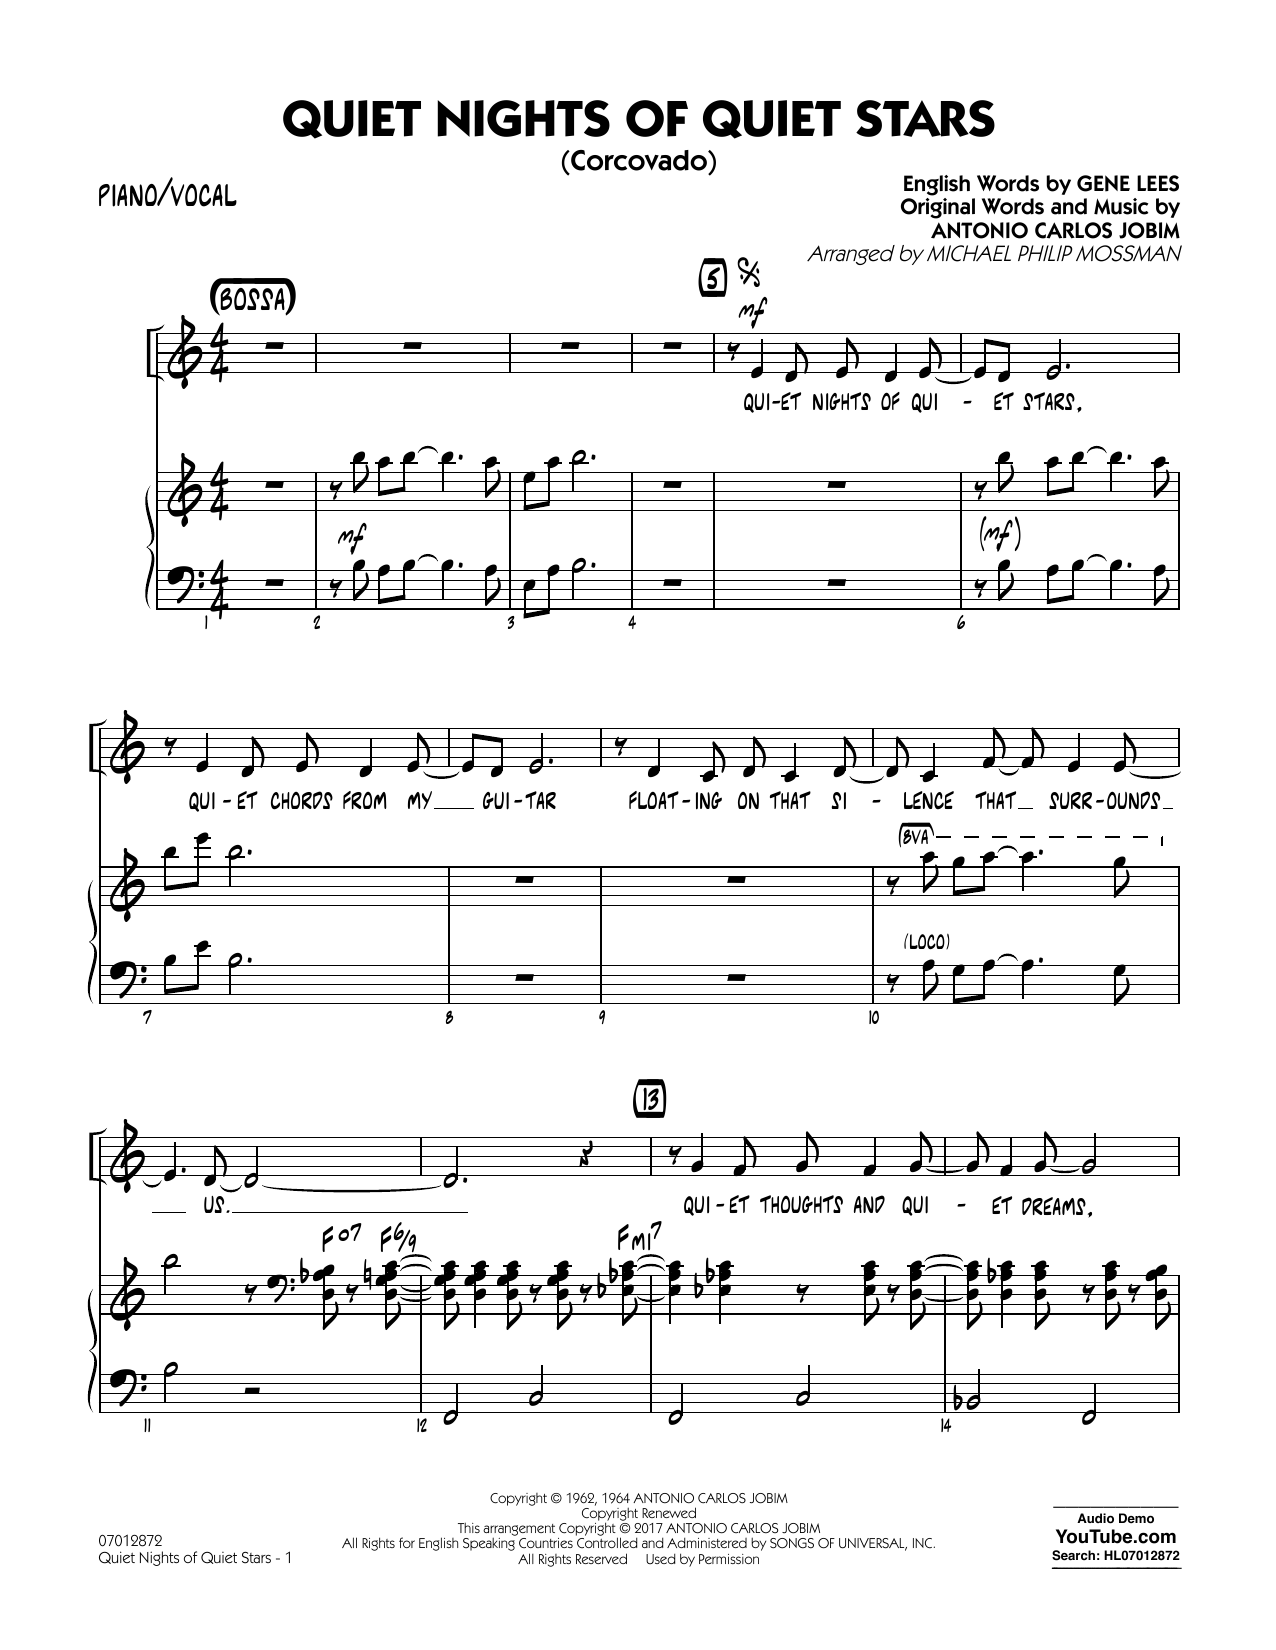 Quiet Nights of Quiet Stars (Corcovado) - Piano/Vocal Sheet Music